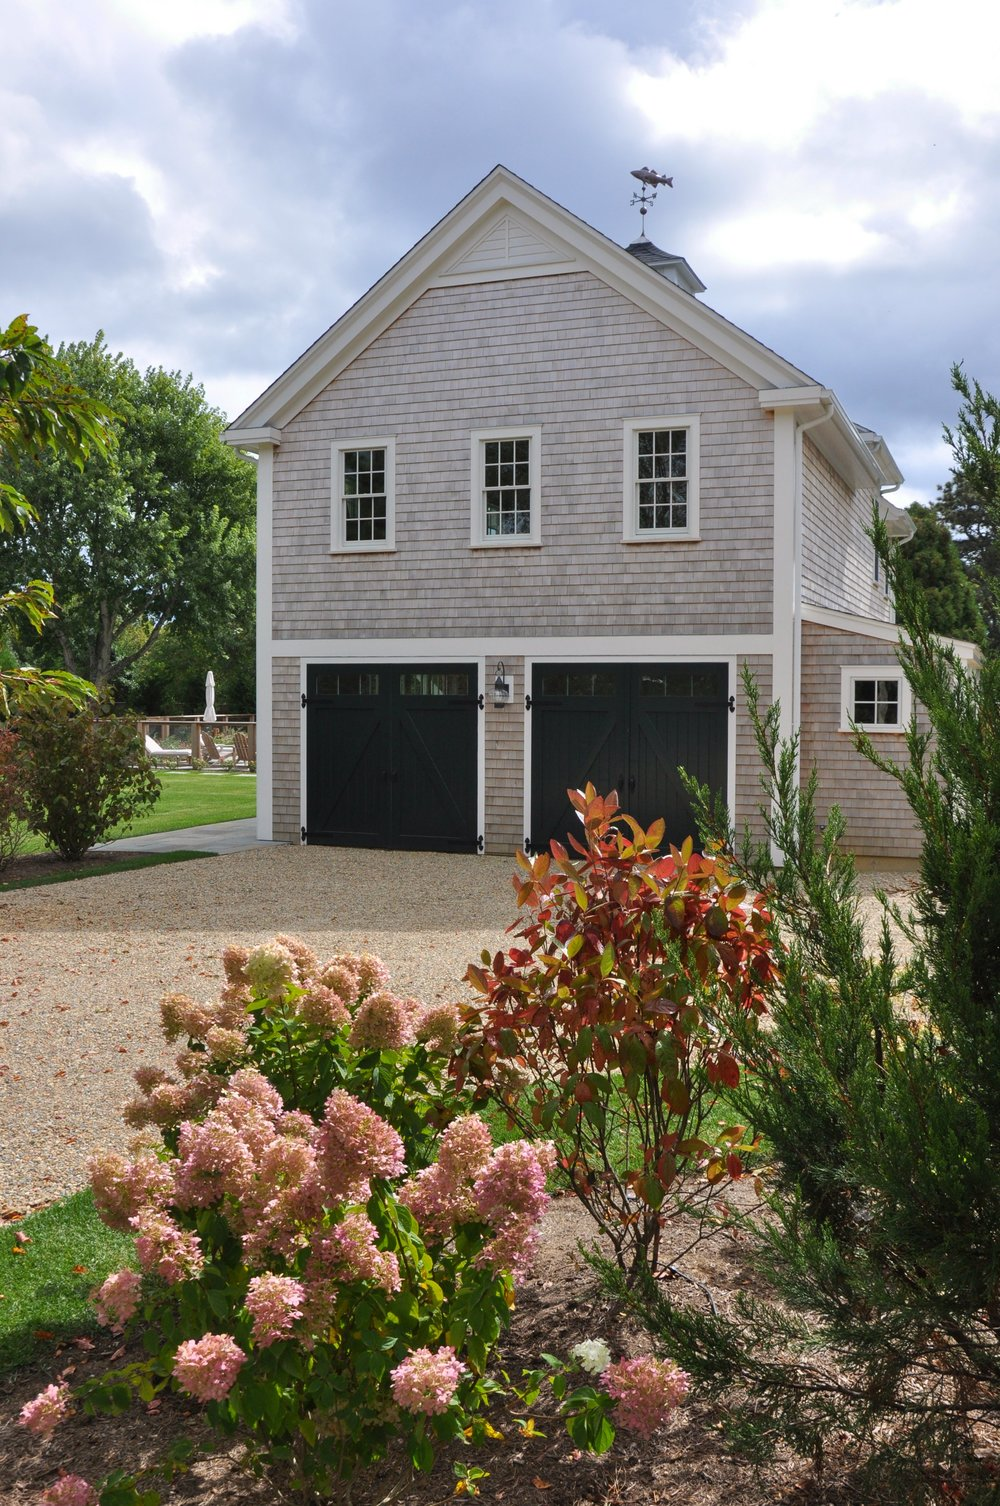 Modern_Farmhouse_Garage_Guesthouse.jpg